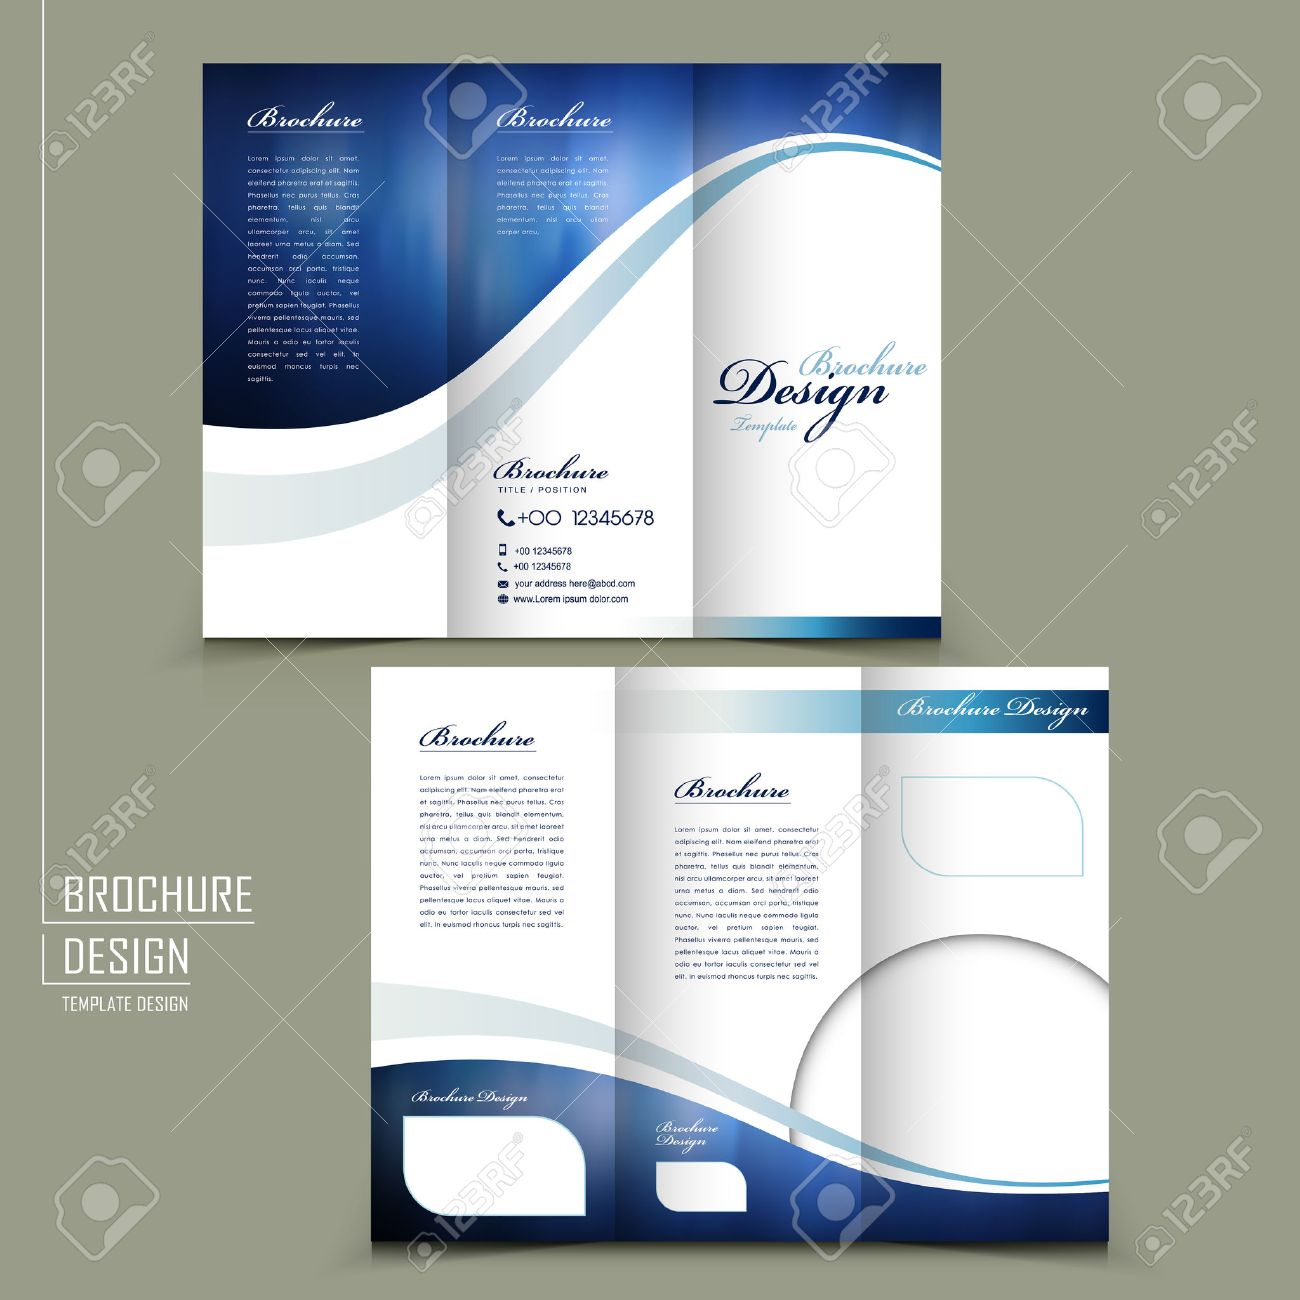 Modern Style Tri-fold Template For Business Advertising Brochure ...